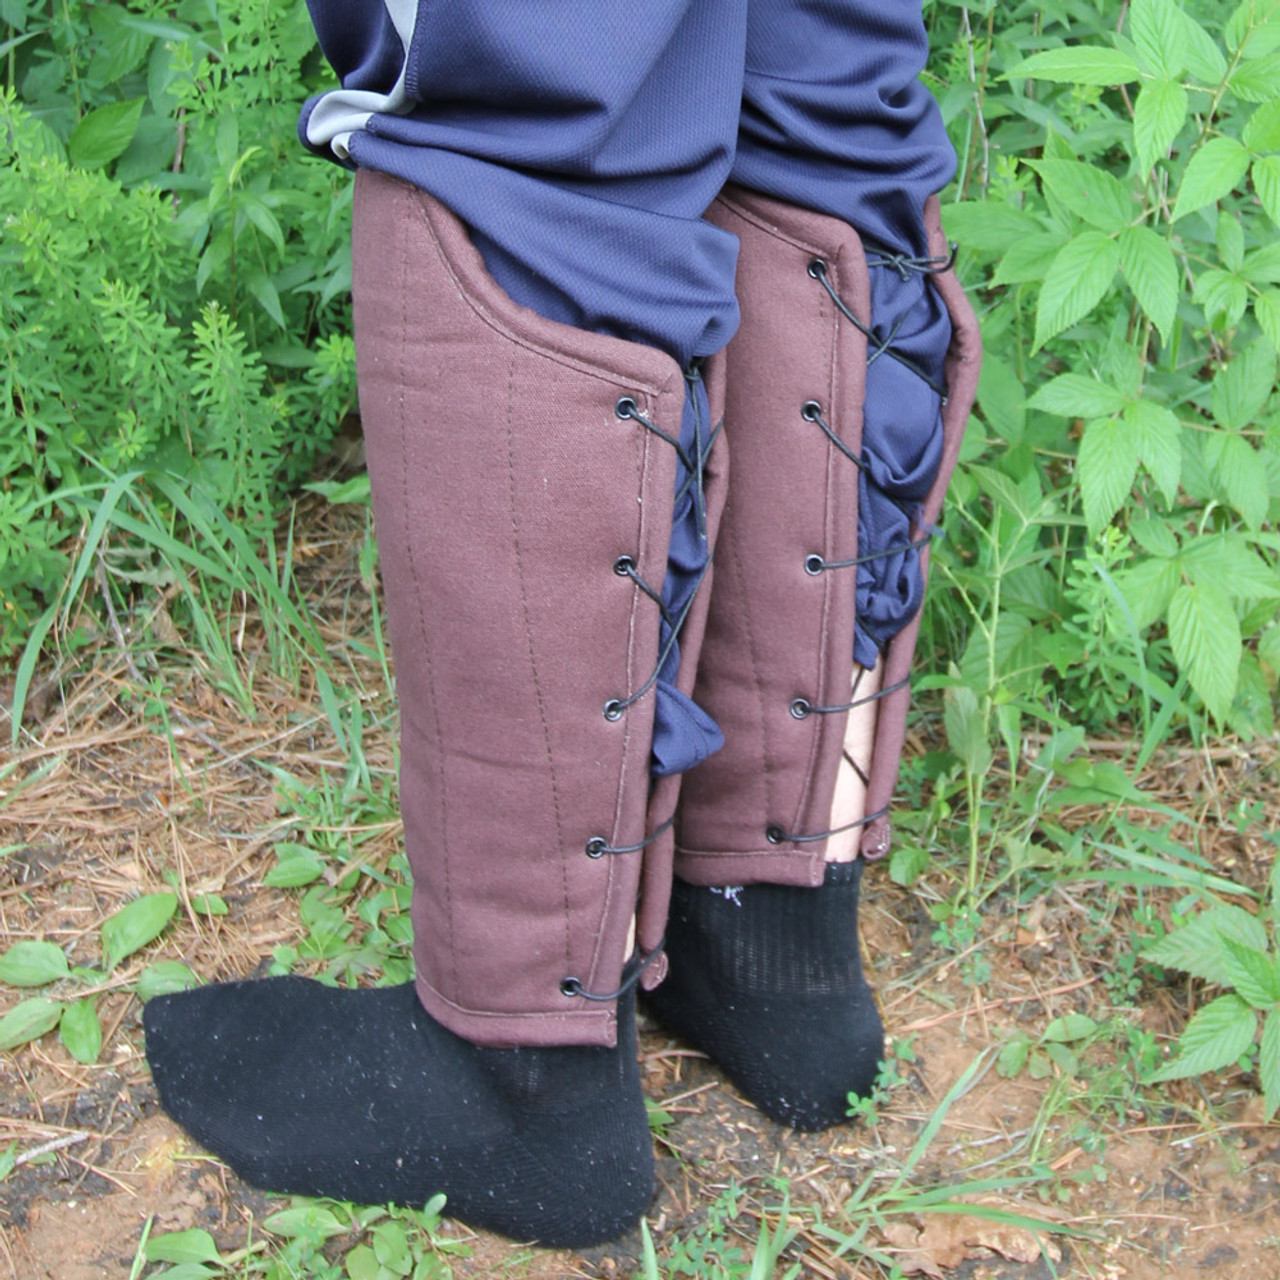 Medieval Flank Attack Padded Greaves Armor